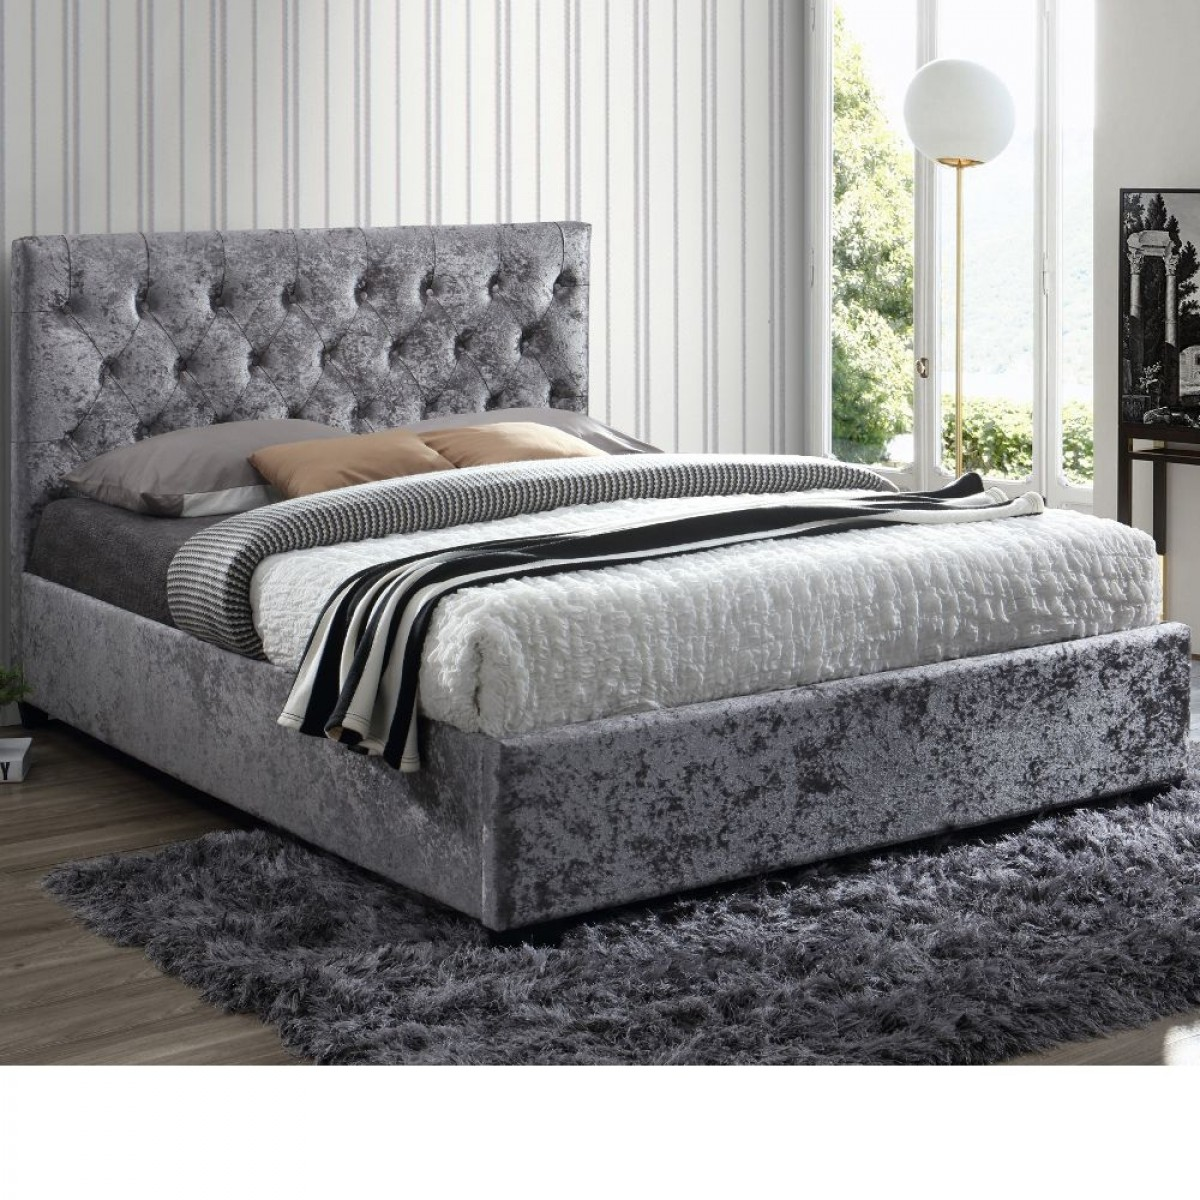 Cologne Steel Fabric Bed